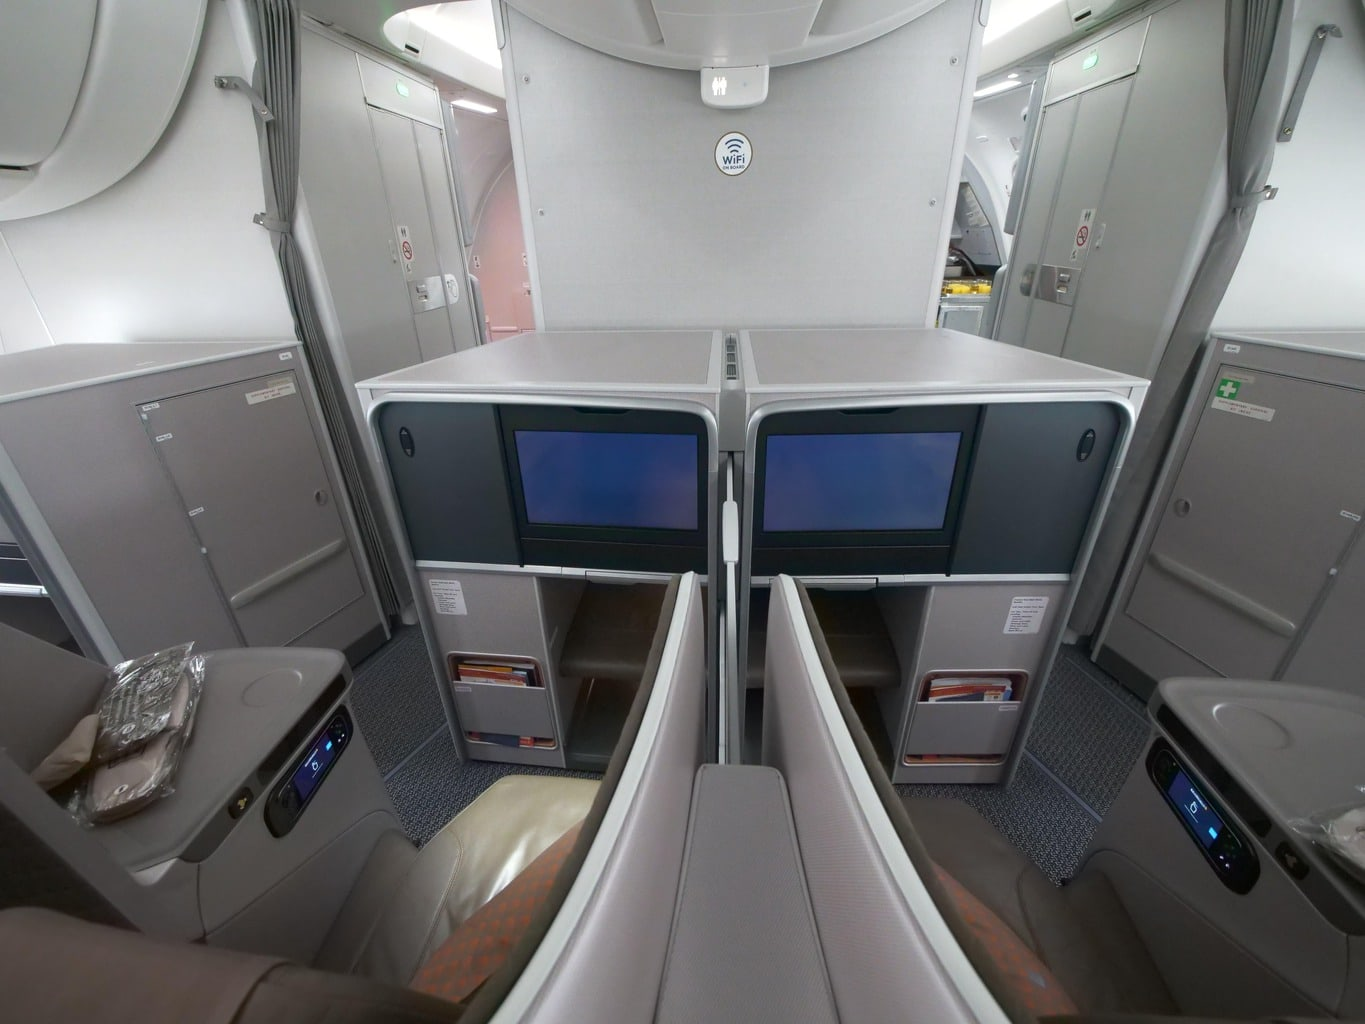 Review of Singapore Airlines Boeing 787-10 Business Class - Once In ...